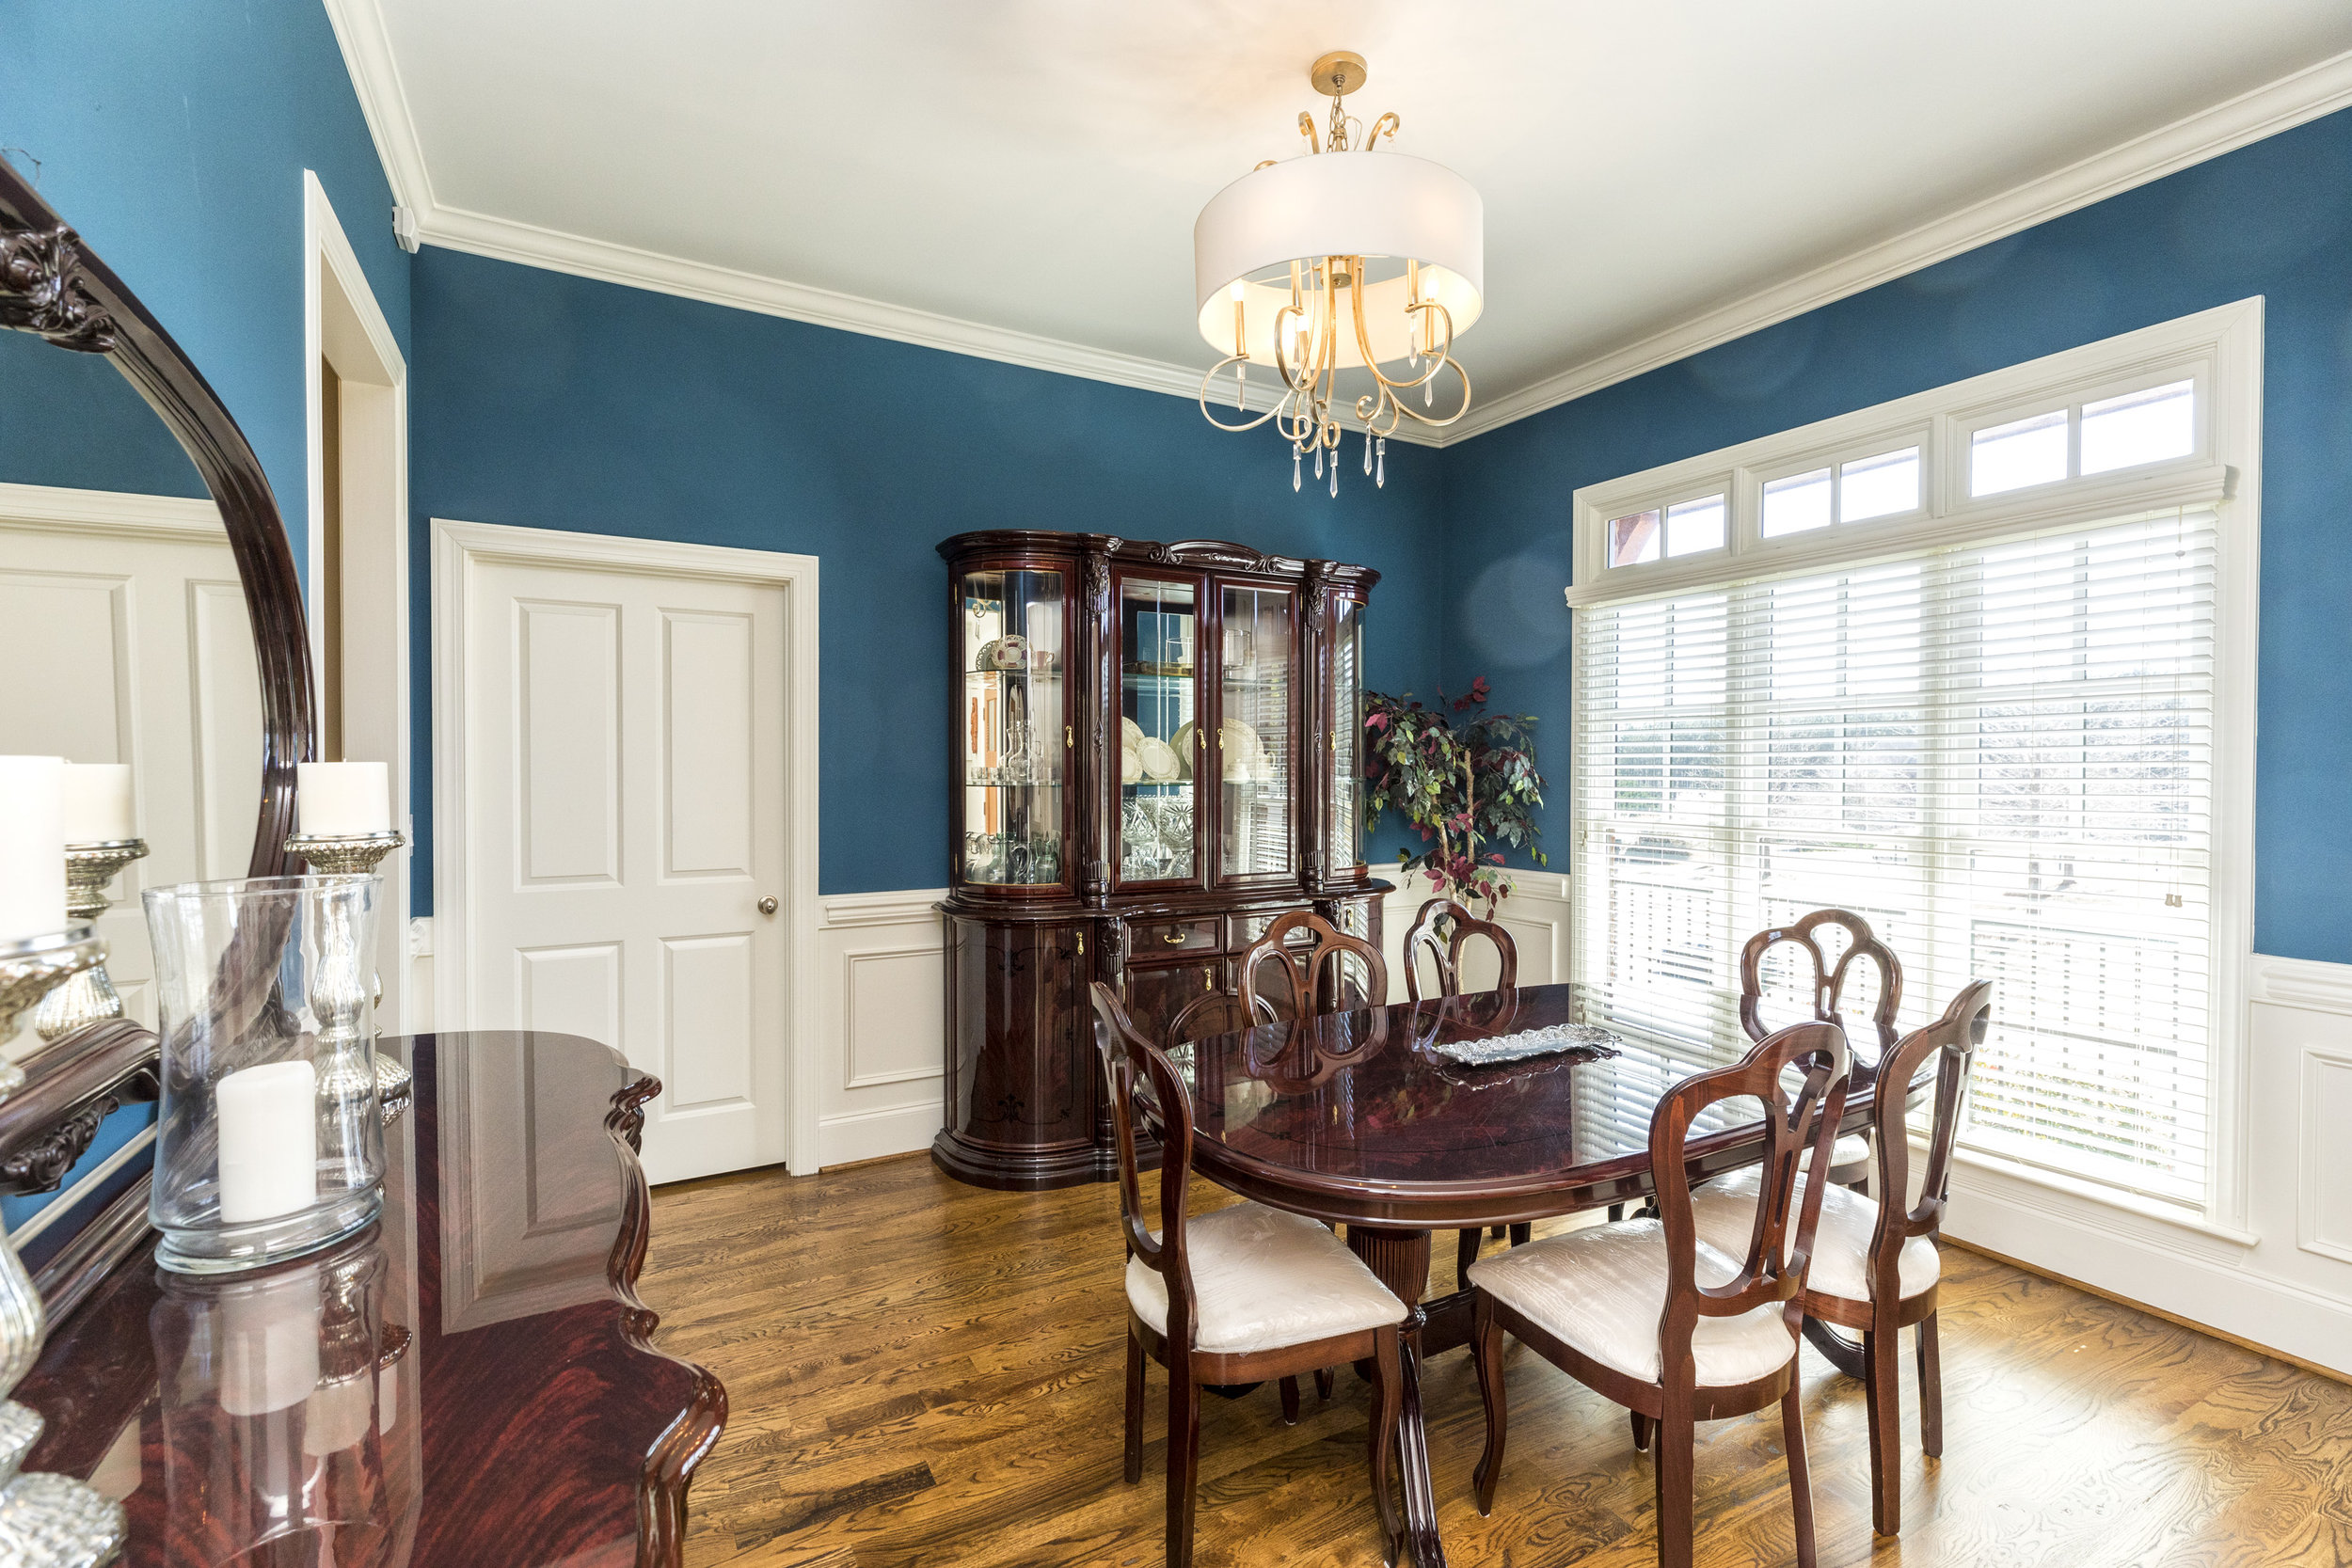 1009 dining room looking in.jpg